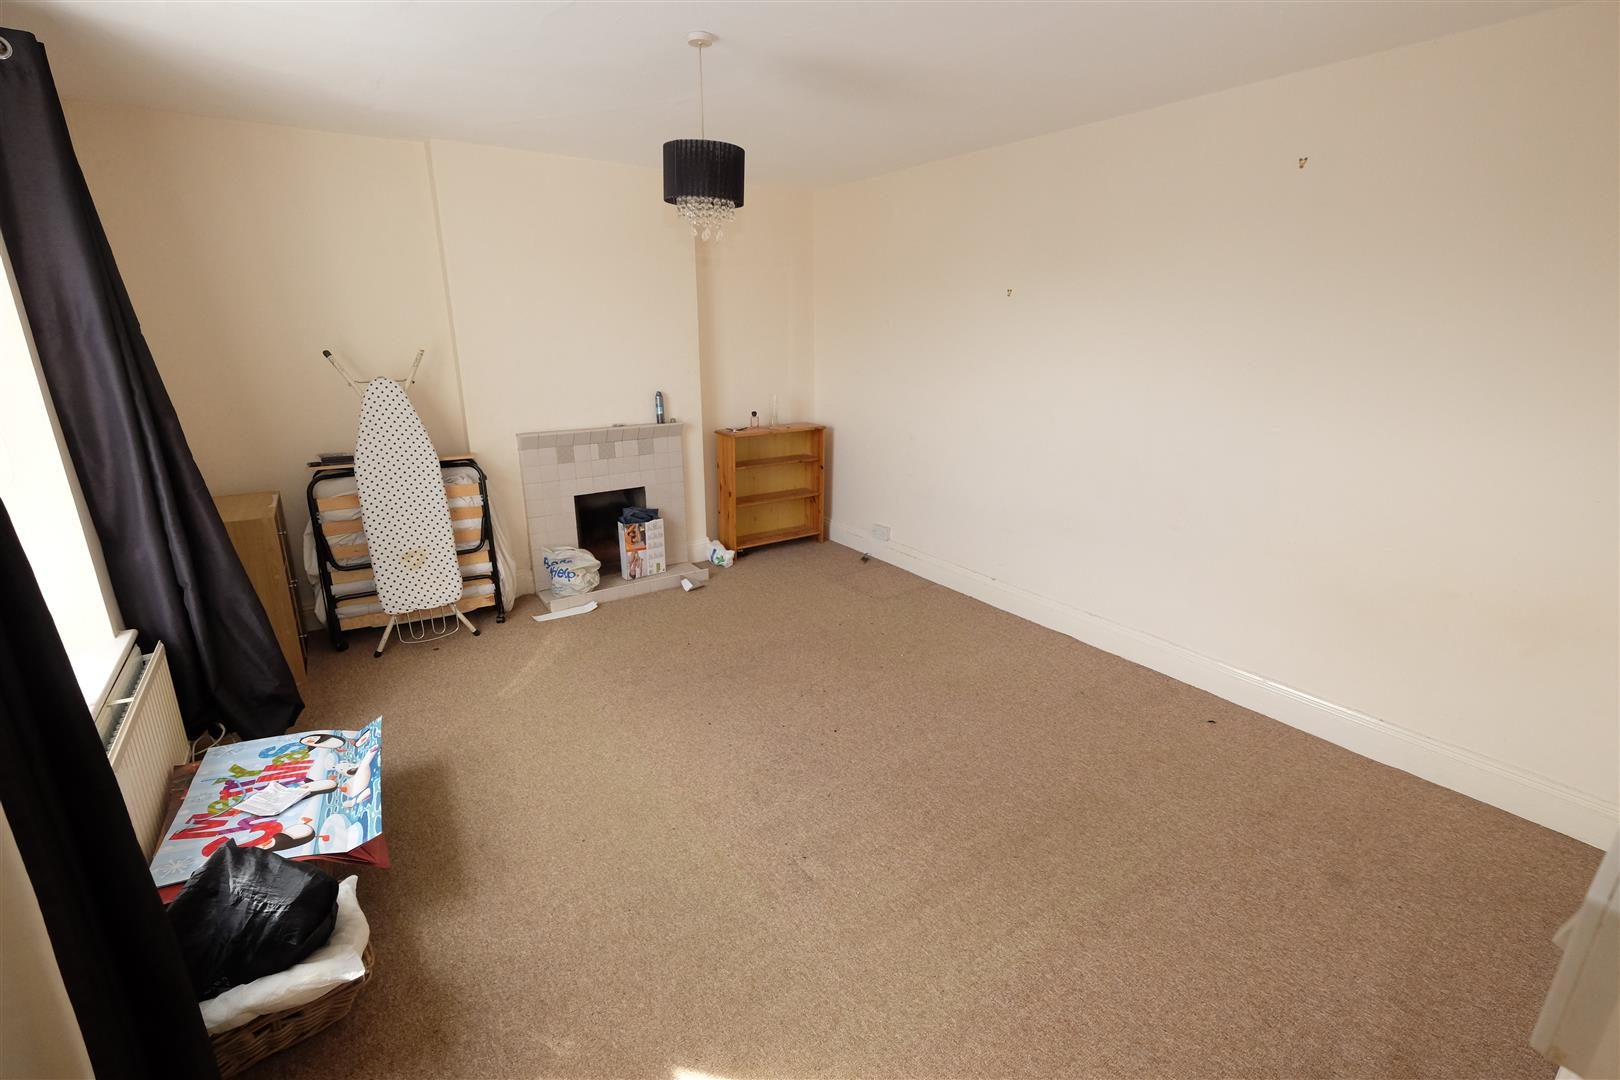 Images for 1 BED FLAT - INVESTMENT / DOER UPPER EAID:hollismoapi BID:11